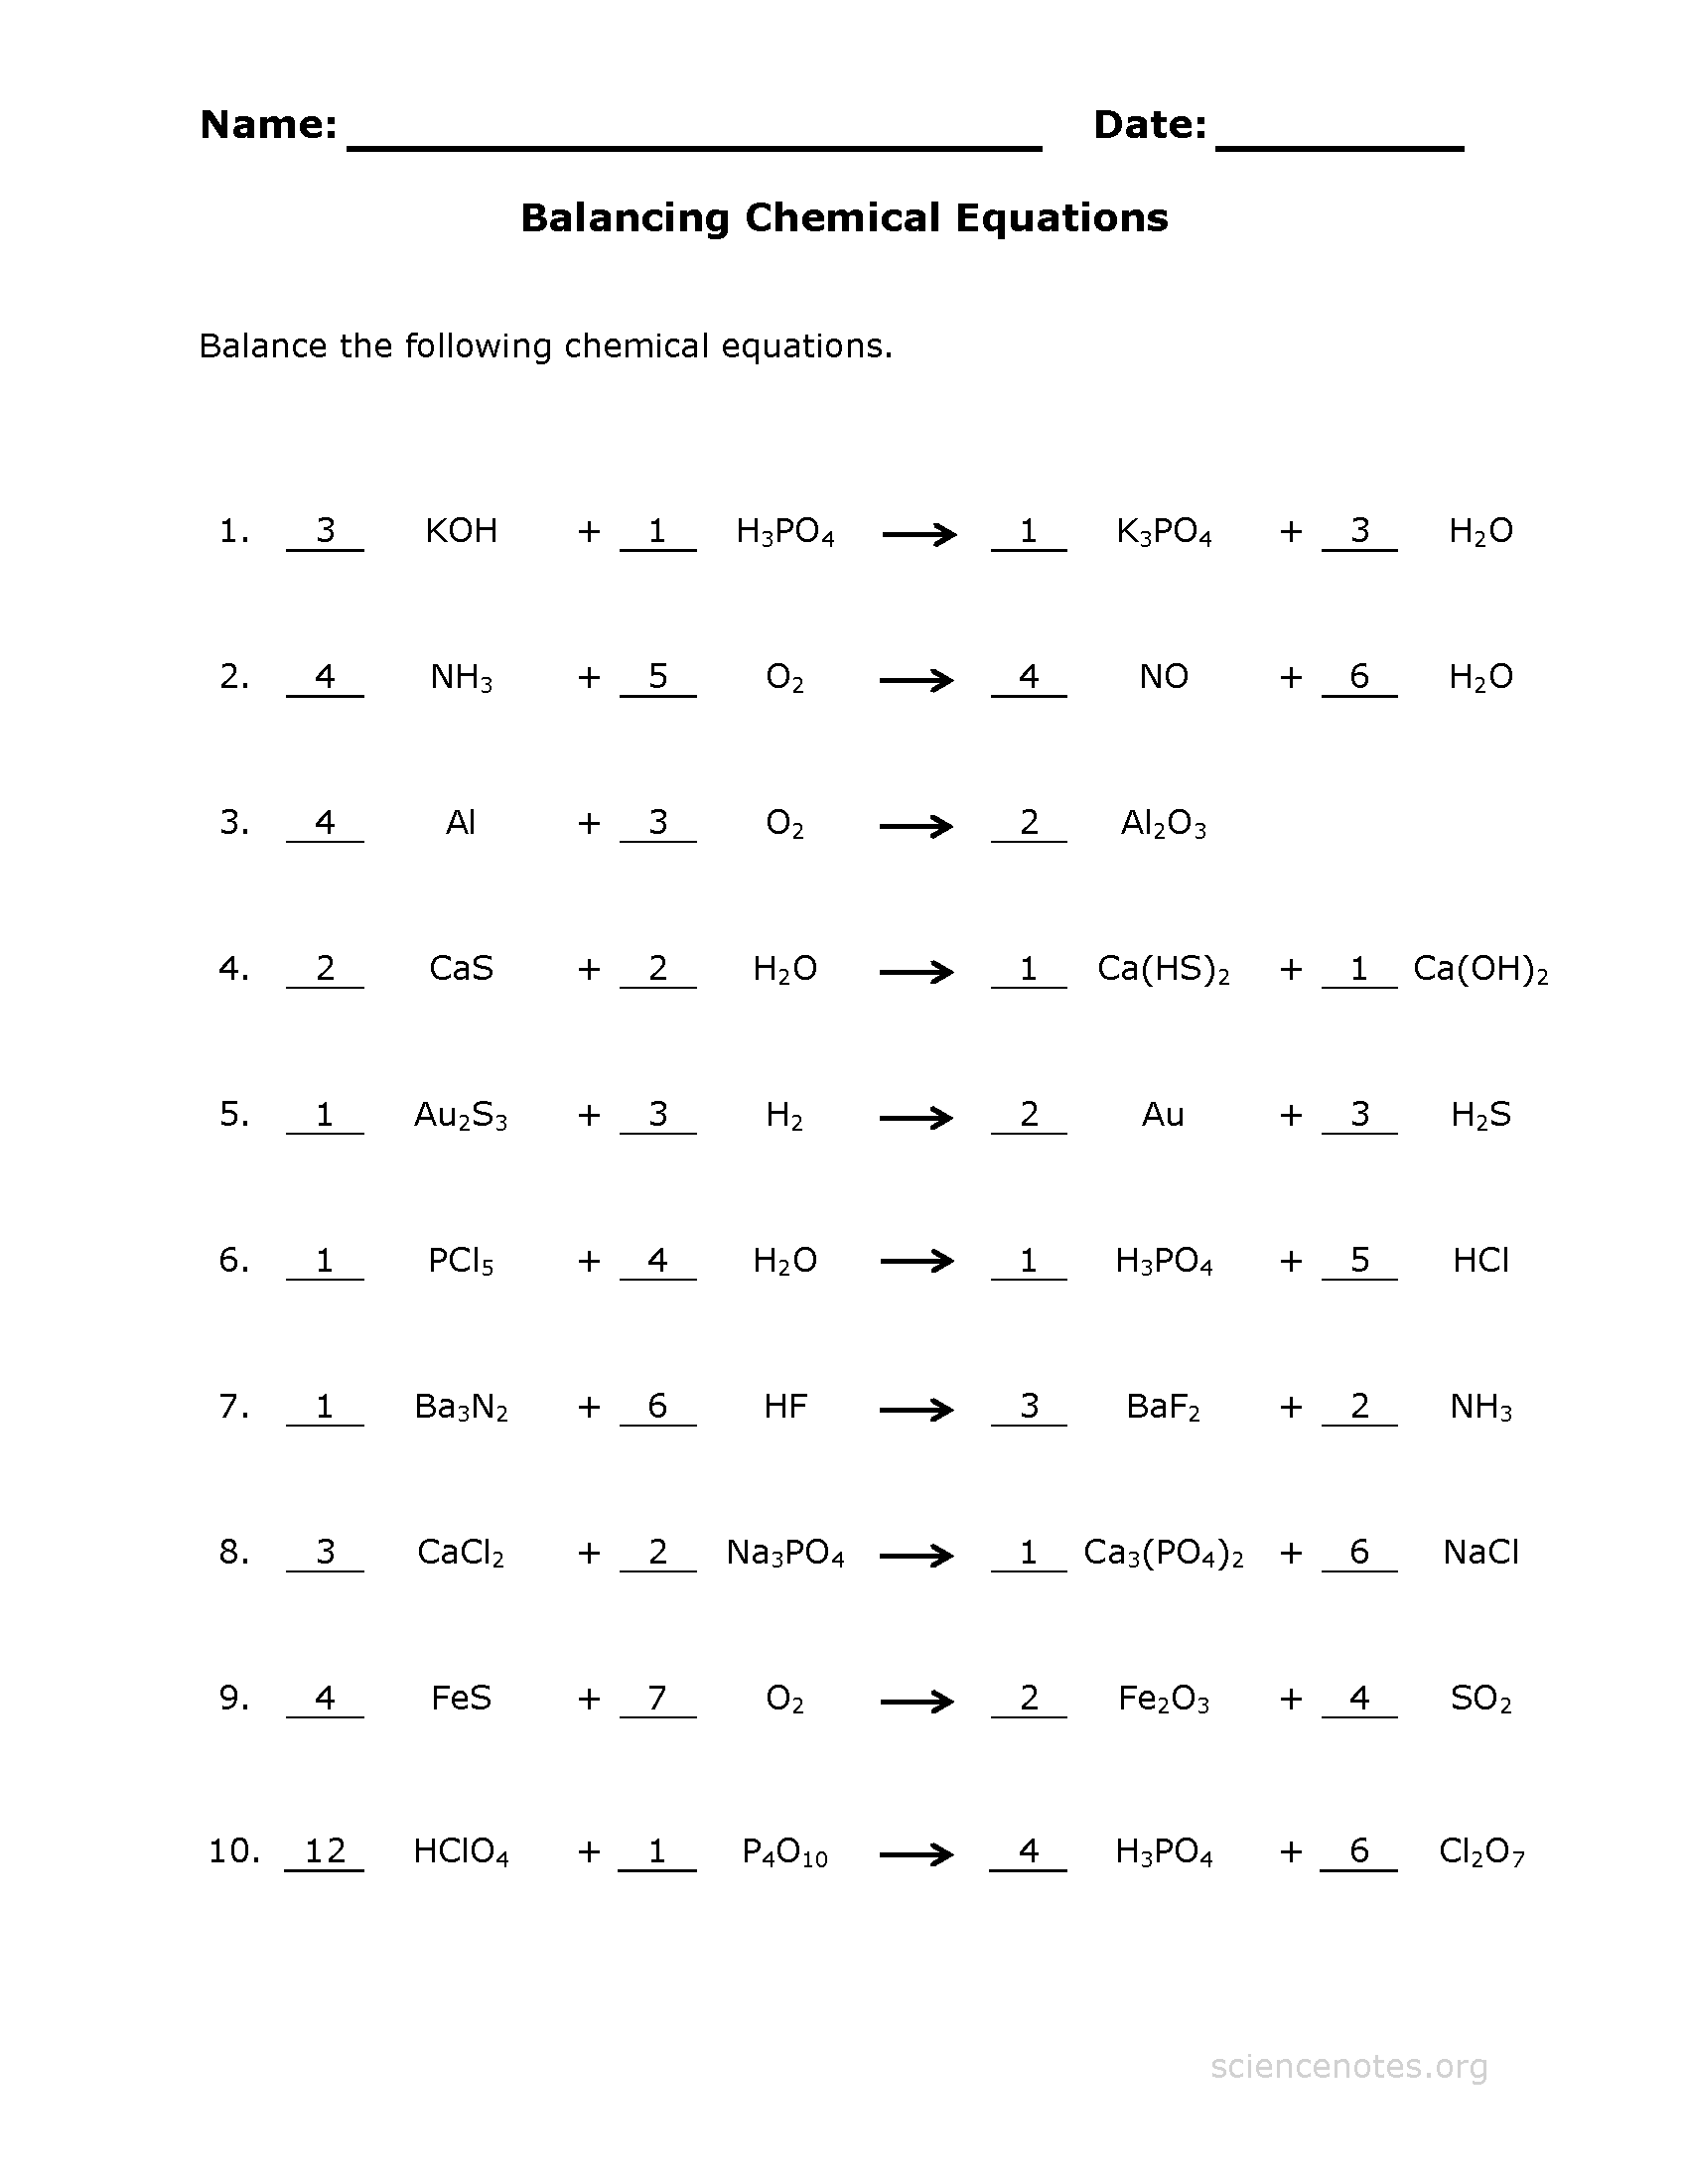 to see the completed sheet check out our other balancing chemical equation worksheets - Balancing Equations Worksheet Answers